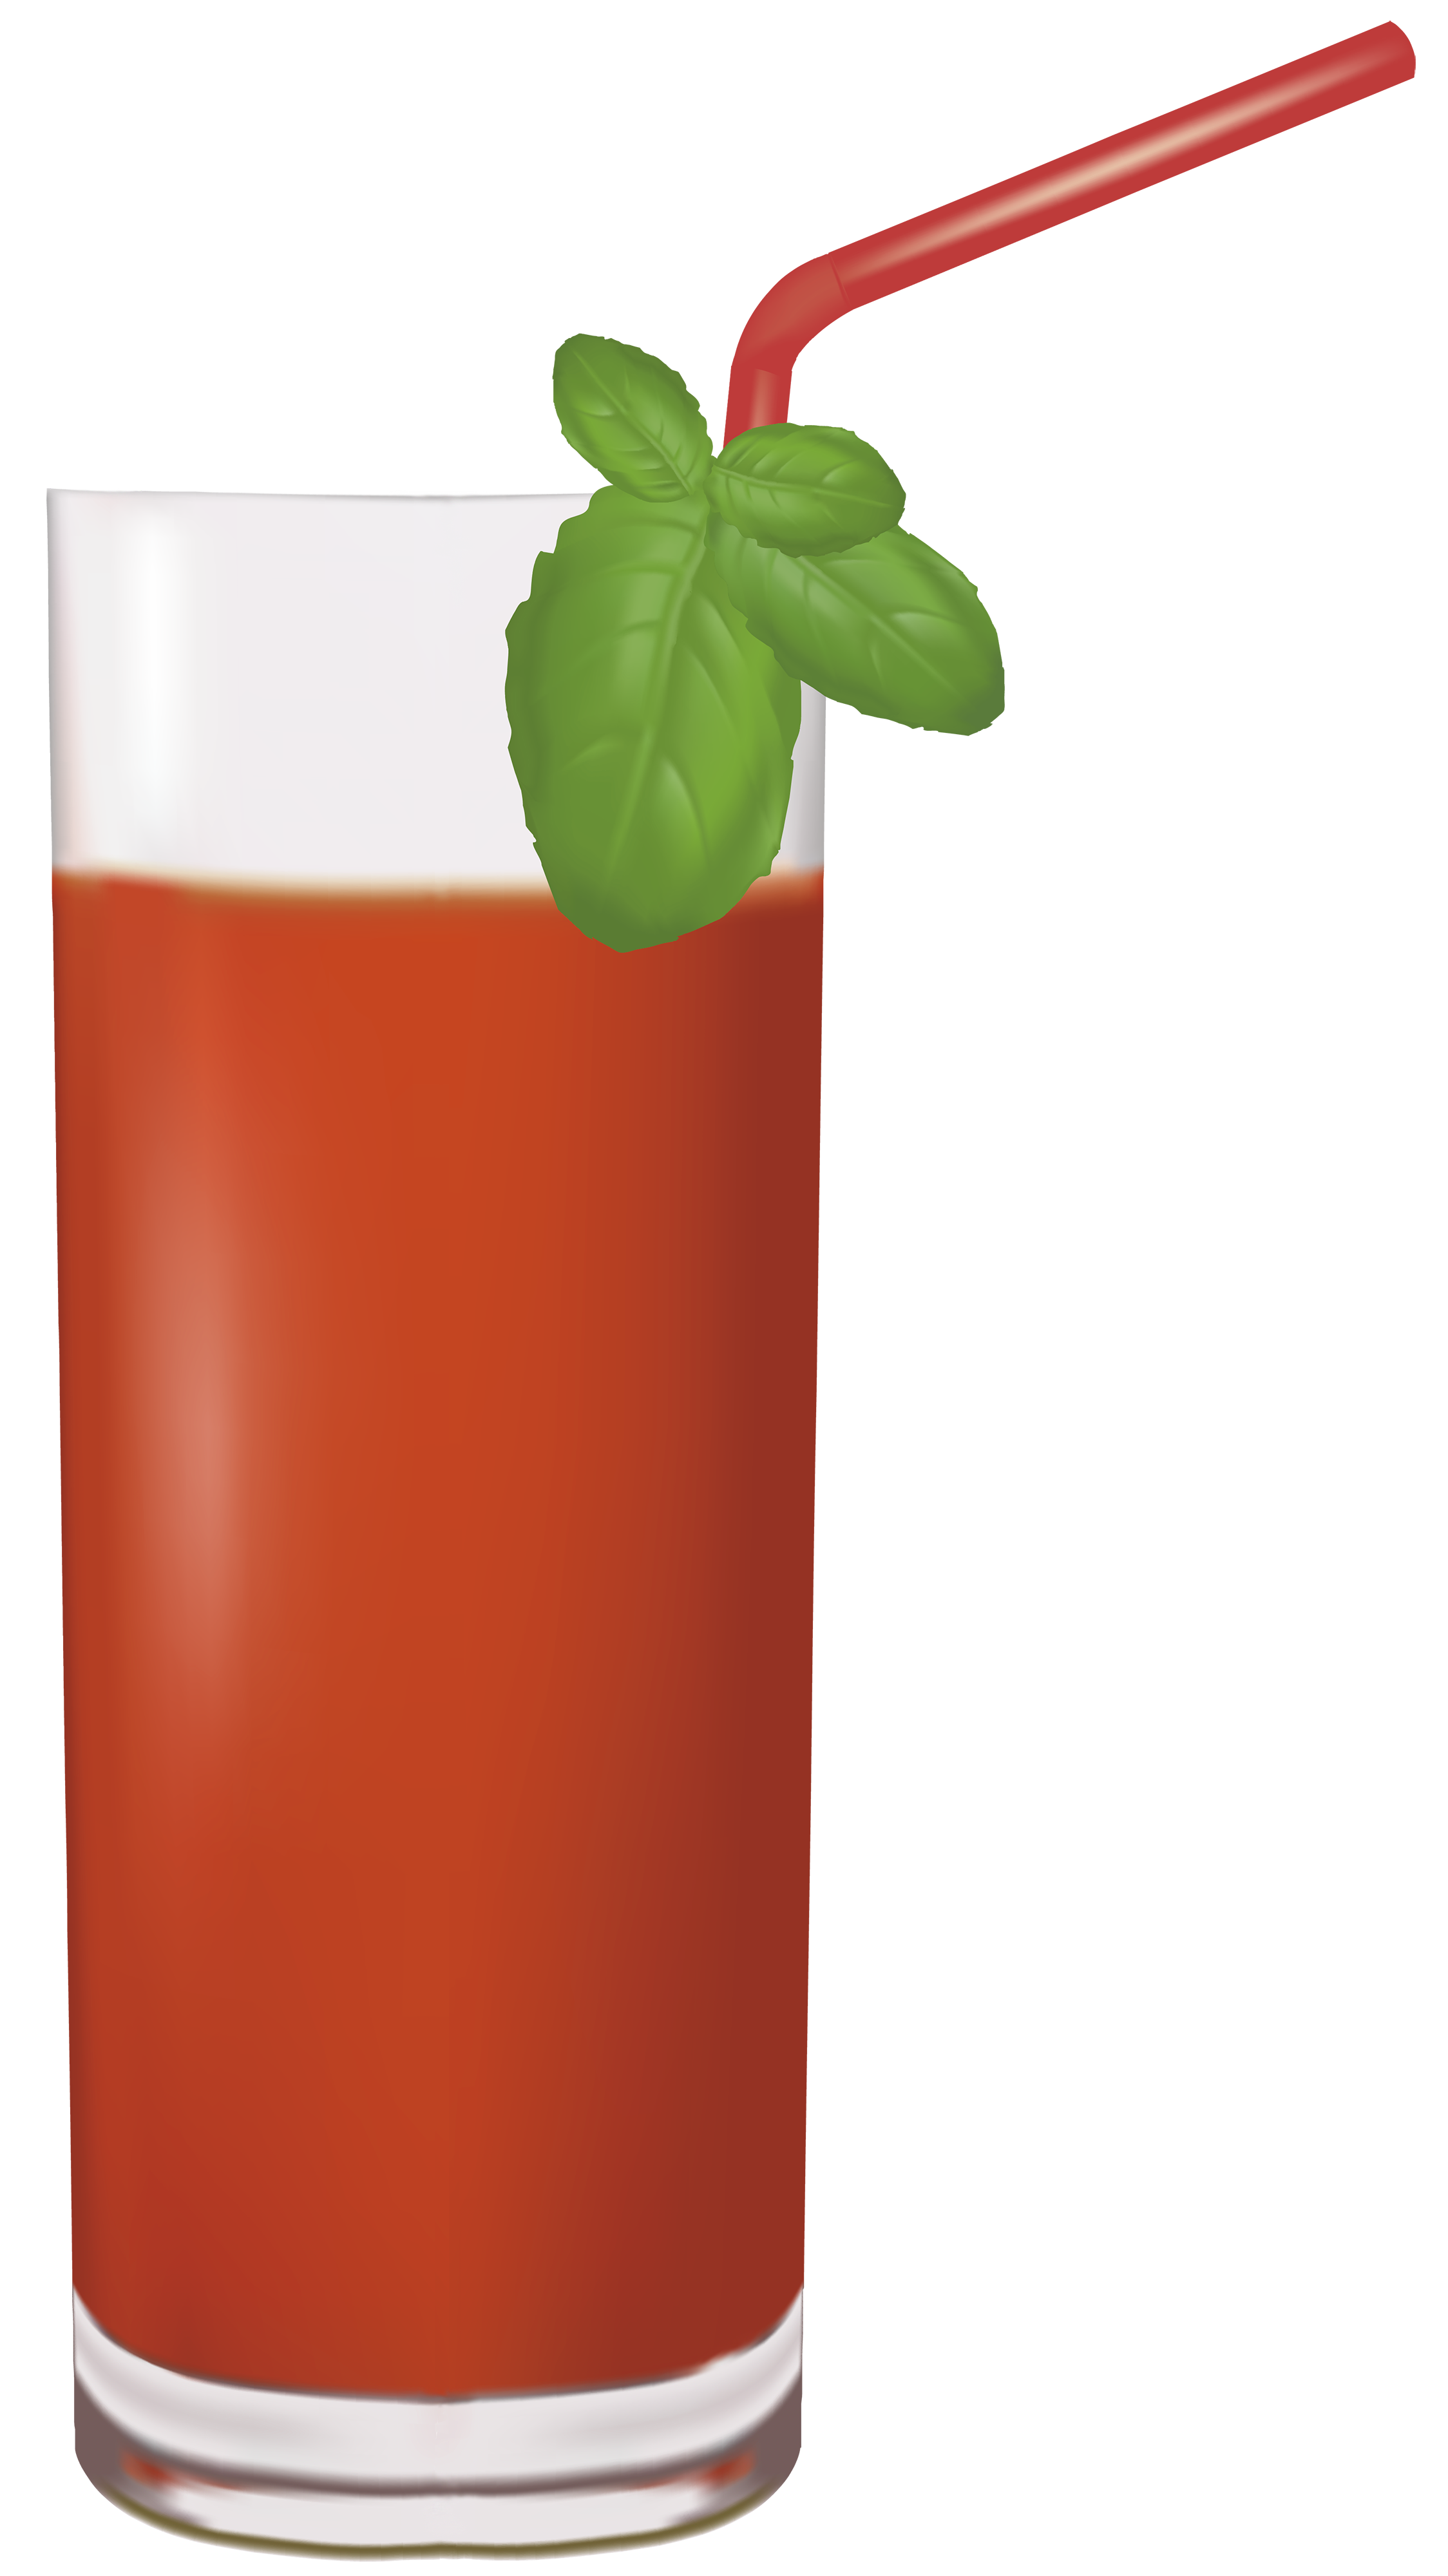 Bloody mary clipart jpg free download Bloody Mary Cocktail PNG Clipart - Best WEB Clipart jpg free download